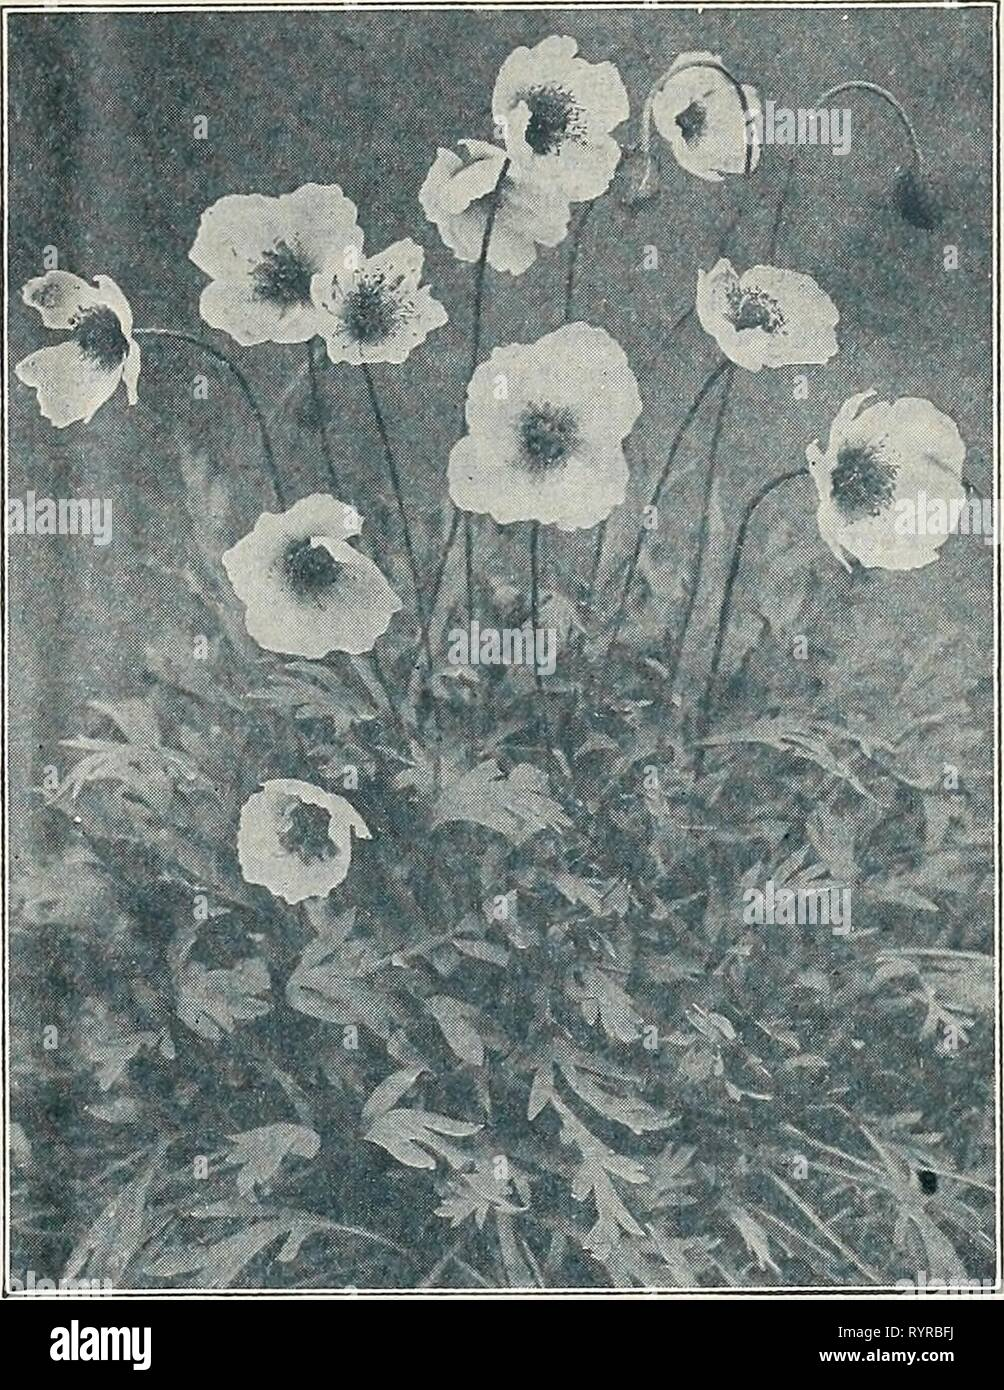 Dreer's midsummer list 1933 (1933) Dreer's midsummer list 1933 . dreersmidsummerl1933henr Year: 1933  DREER'S FLOWER SEEDS FOR SUMMER AND AUTUMN SOWING 15 Hardy Perennial Phlox (p. oecussata) PER PKT. 3641 Hardy herbaceous perennials. The seed we send out has been saved from an unrivalled collection, and is supplied in mixture only, j oz., 75 cts $0 15 PhySaliS (Chinese Lantern Plant) 3646 Francheti. An ornamental plant, forming dense bushes about 2 feet high, producing freely its bright orange-scarlet lantern-like fruits, which can be cut and dried for winter bouquets. I oz., 40 cts 10 PhySOS - Stock Image